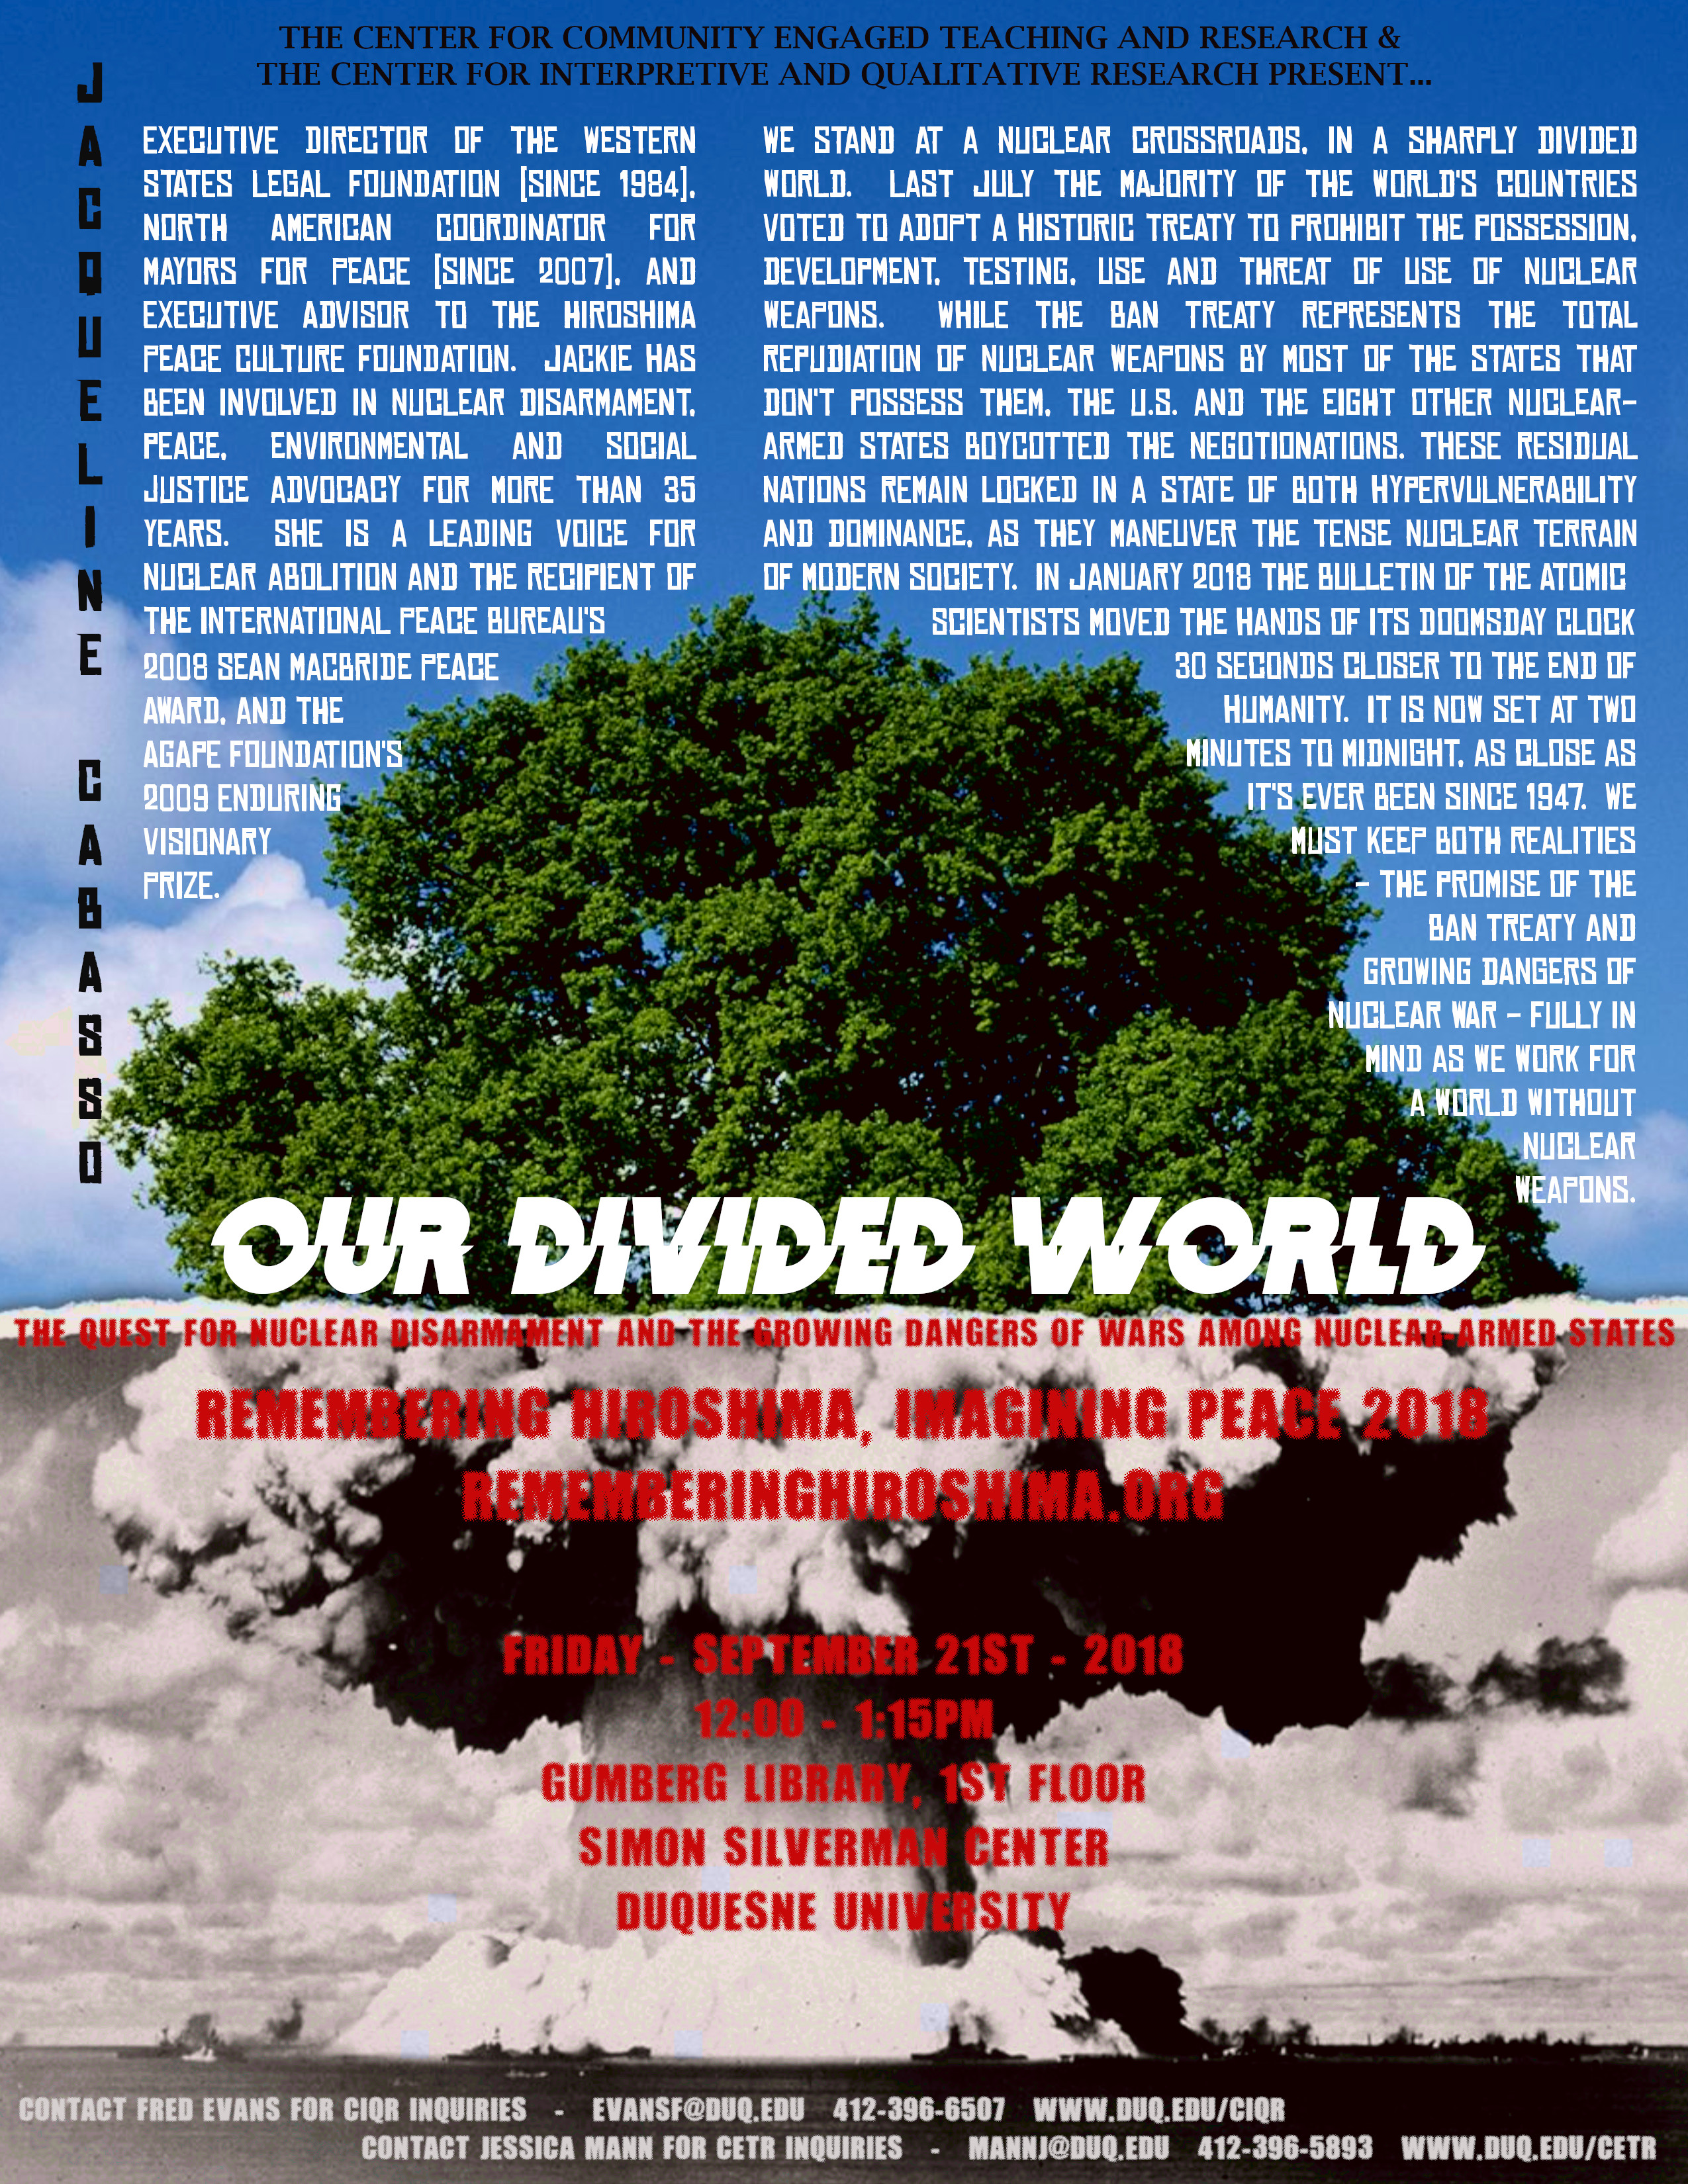 Our Divided World: The Quest for Nuclear Disarmament and the Growing Dangers of Ward Among Nuclear Armed States